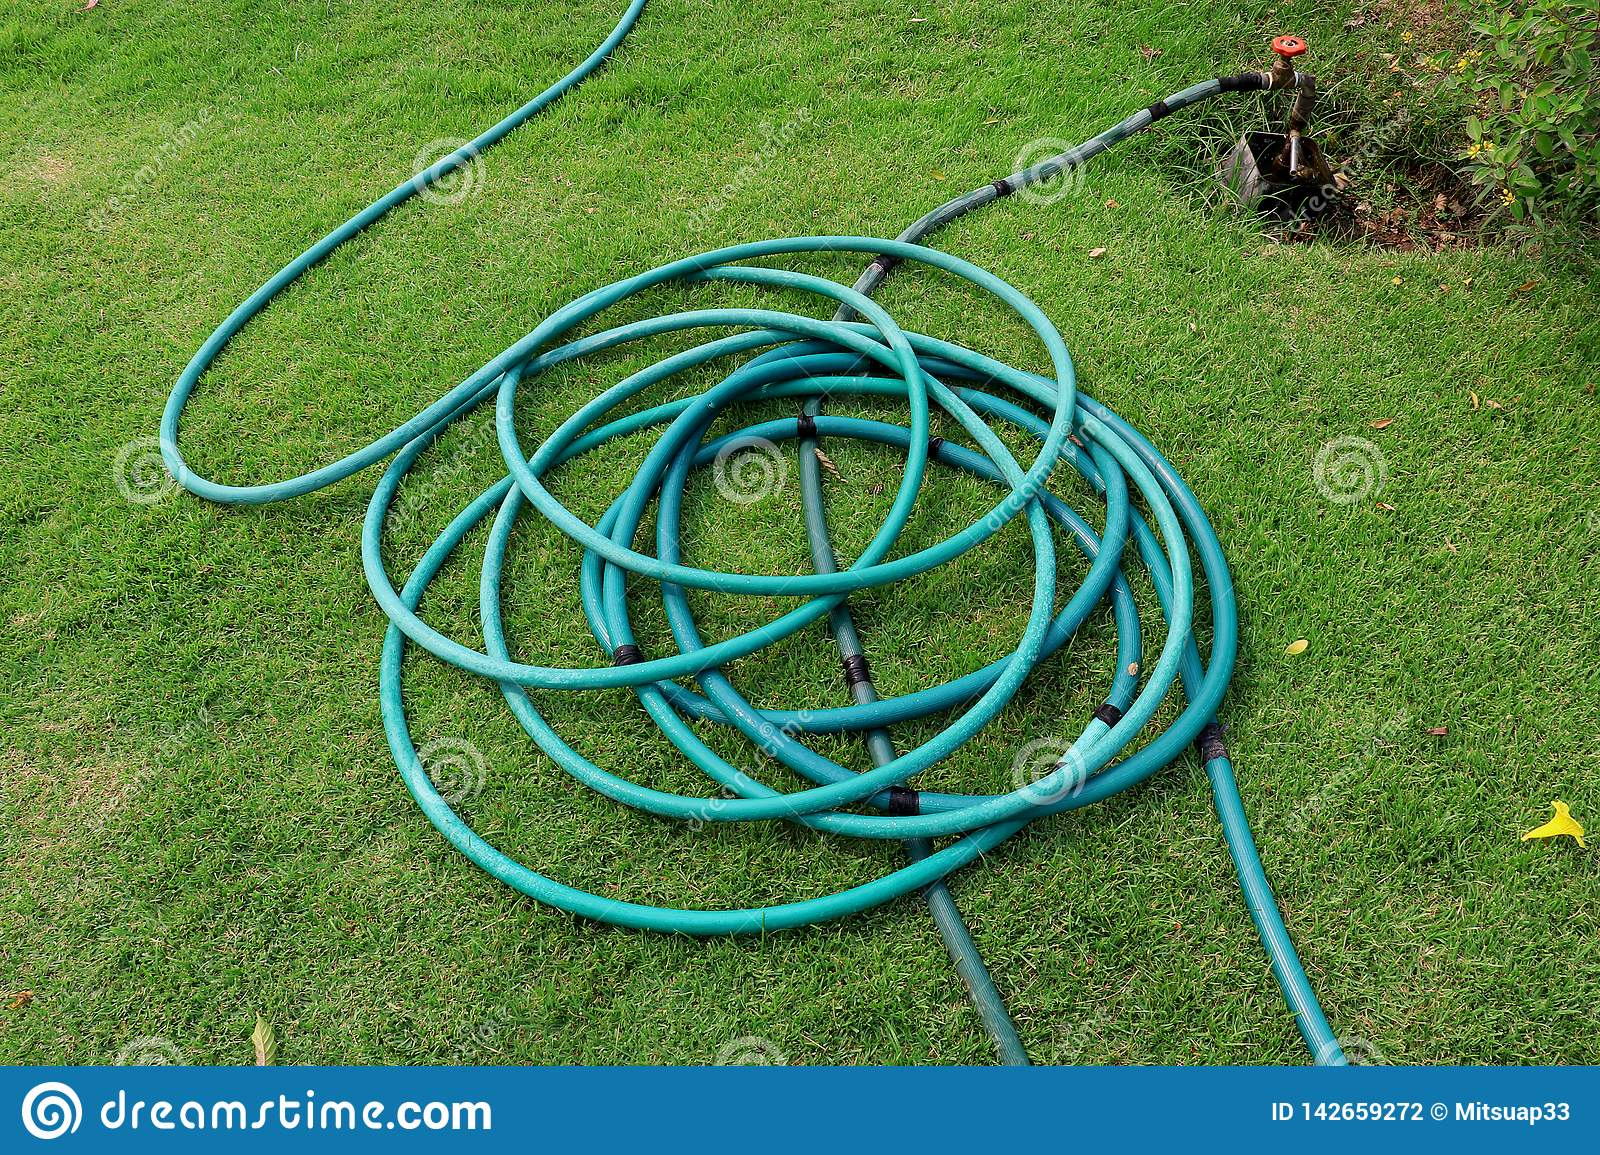 A green hose lying on the grassy ground, A close up image of a garden hose, Rubber tube for watering plants in the garden